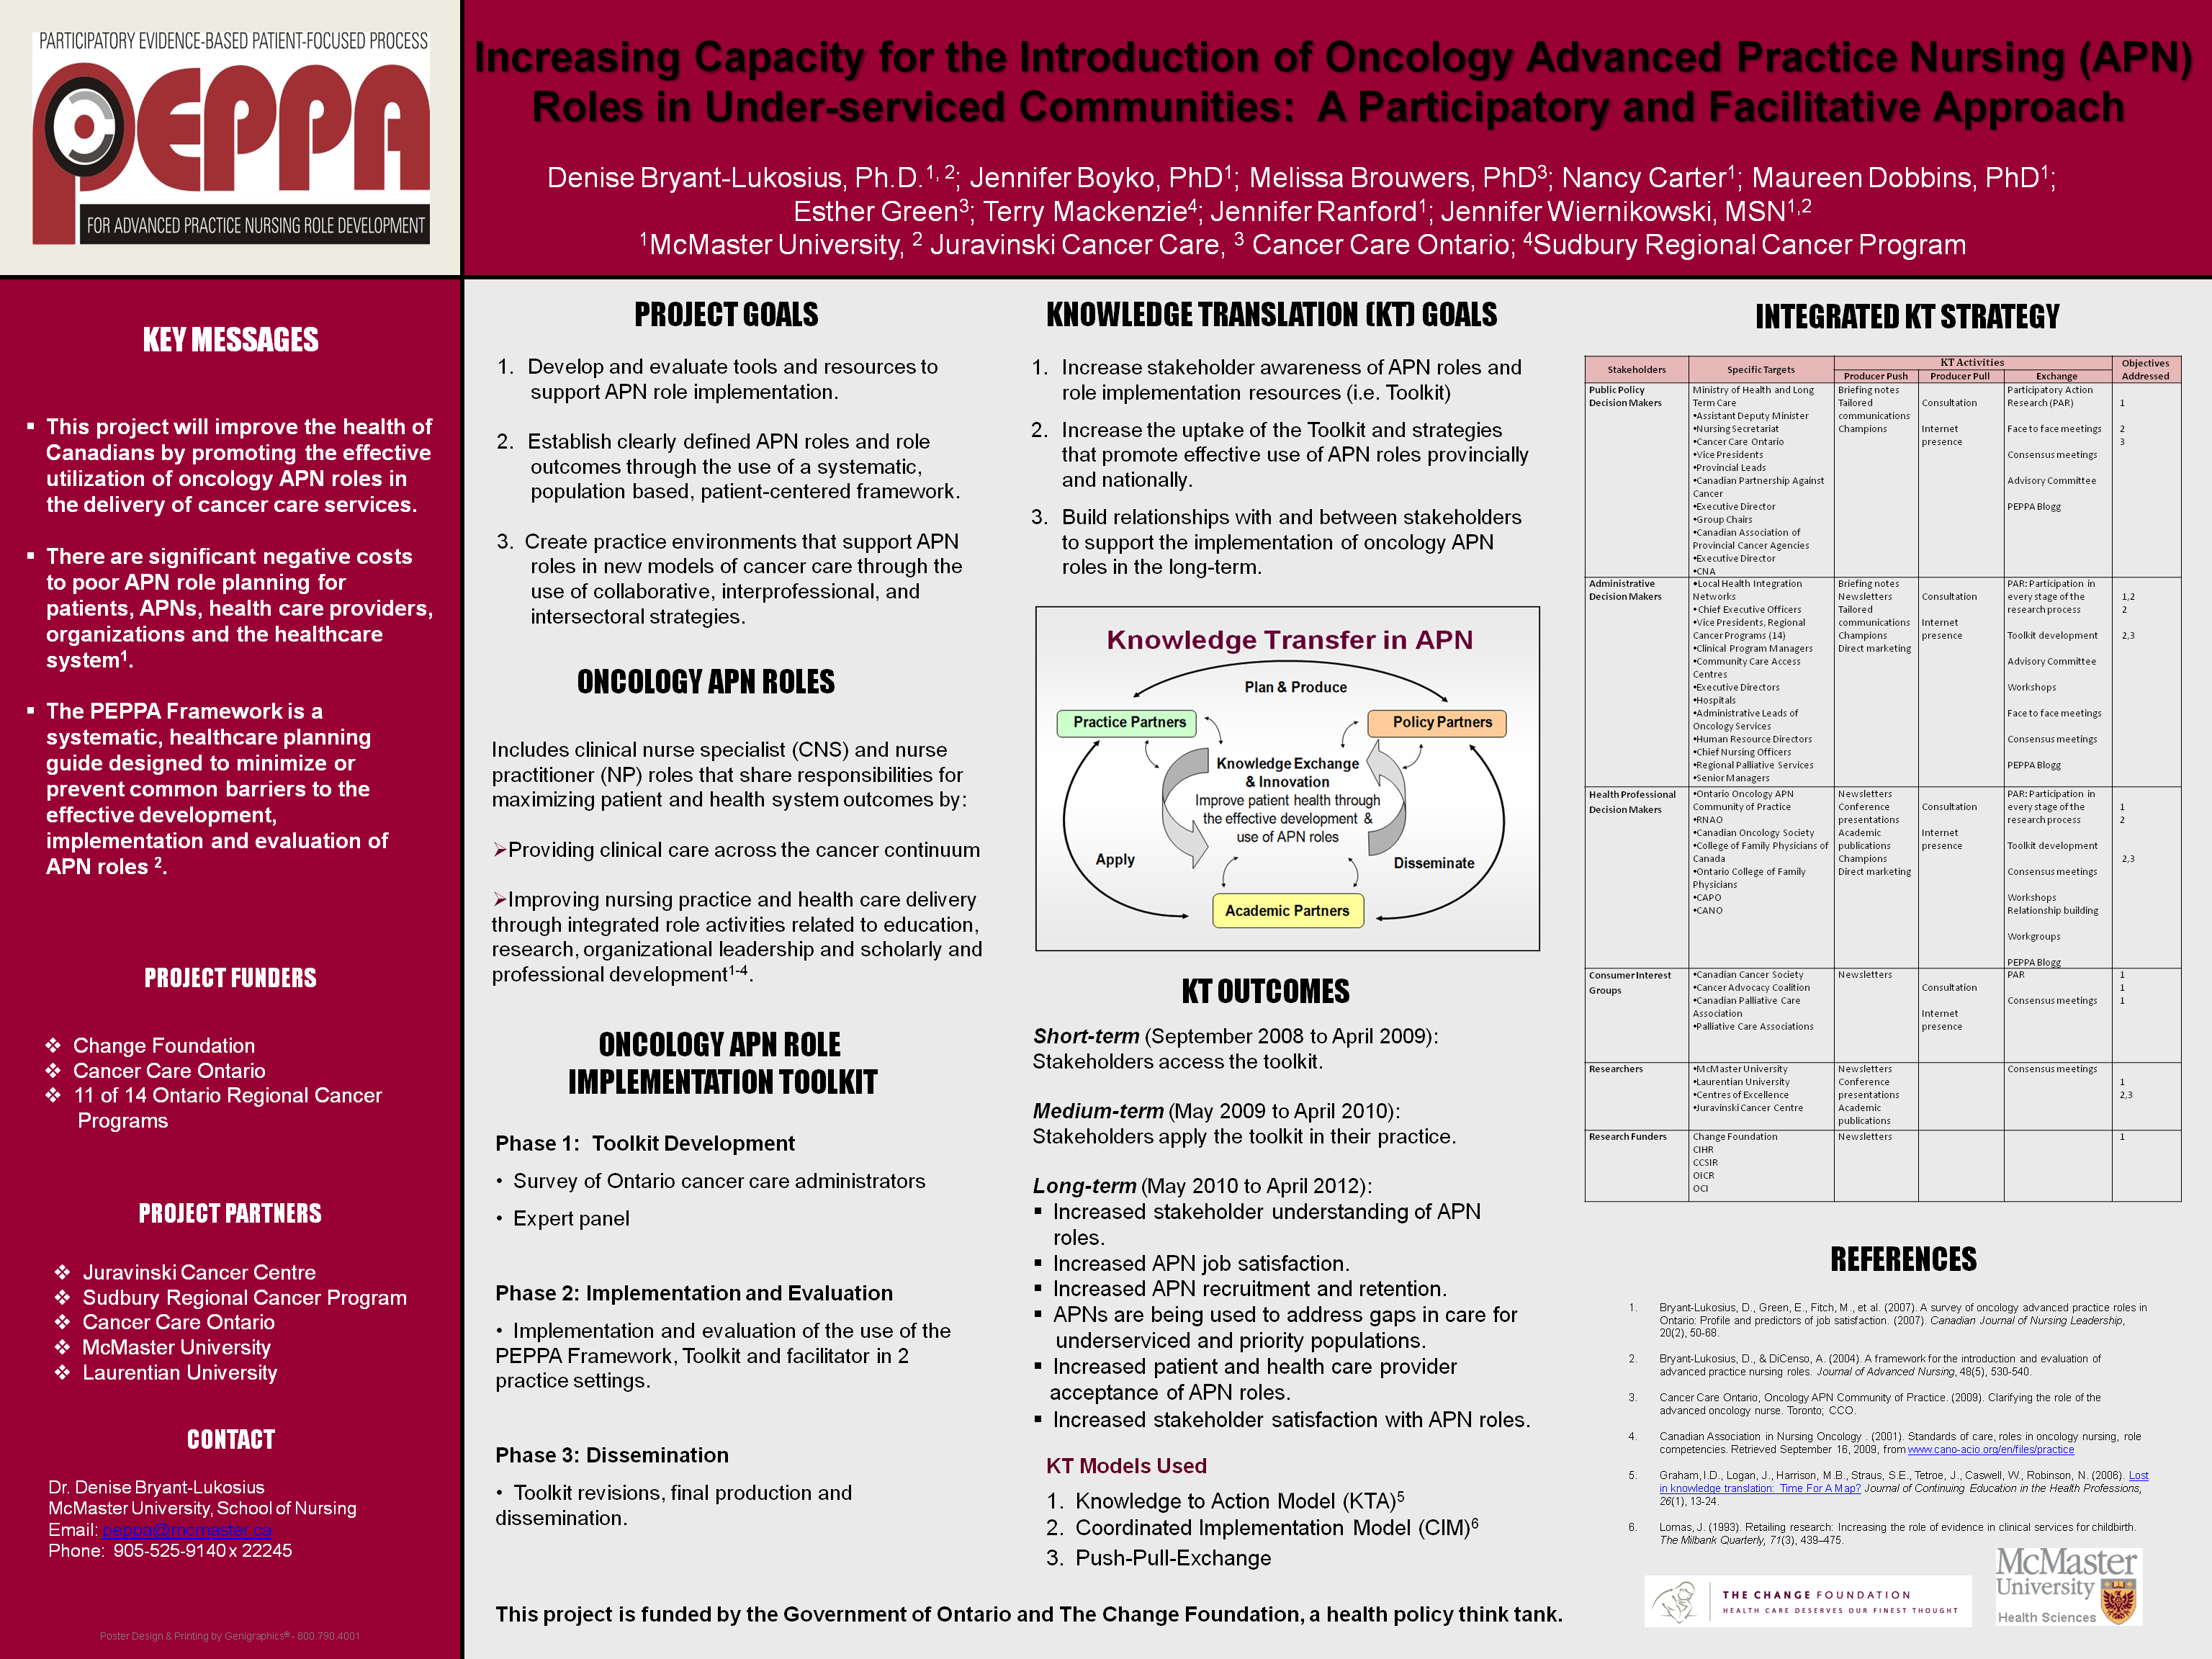 developing leadership in advanced practice nursing apn Download citation   advanced practice nu   the aim of this paper is to discuss six issues influencing the introduction of advanced practice nursing (apn) roles: confusion about apn terminology, failure to define clearly the roles and goals, role emphasis on physician replacement/support, unde.